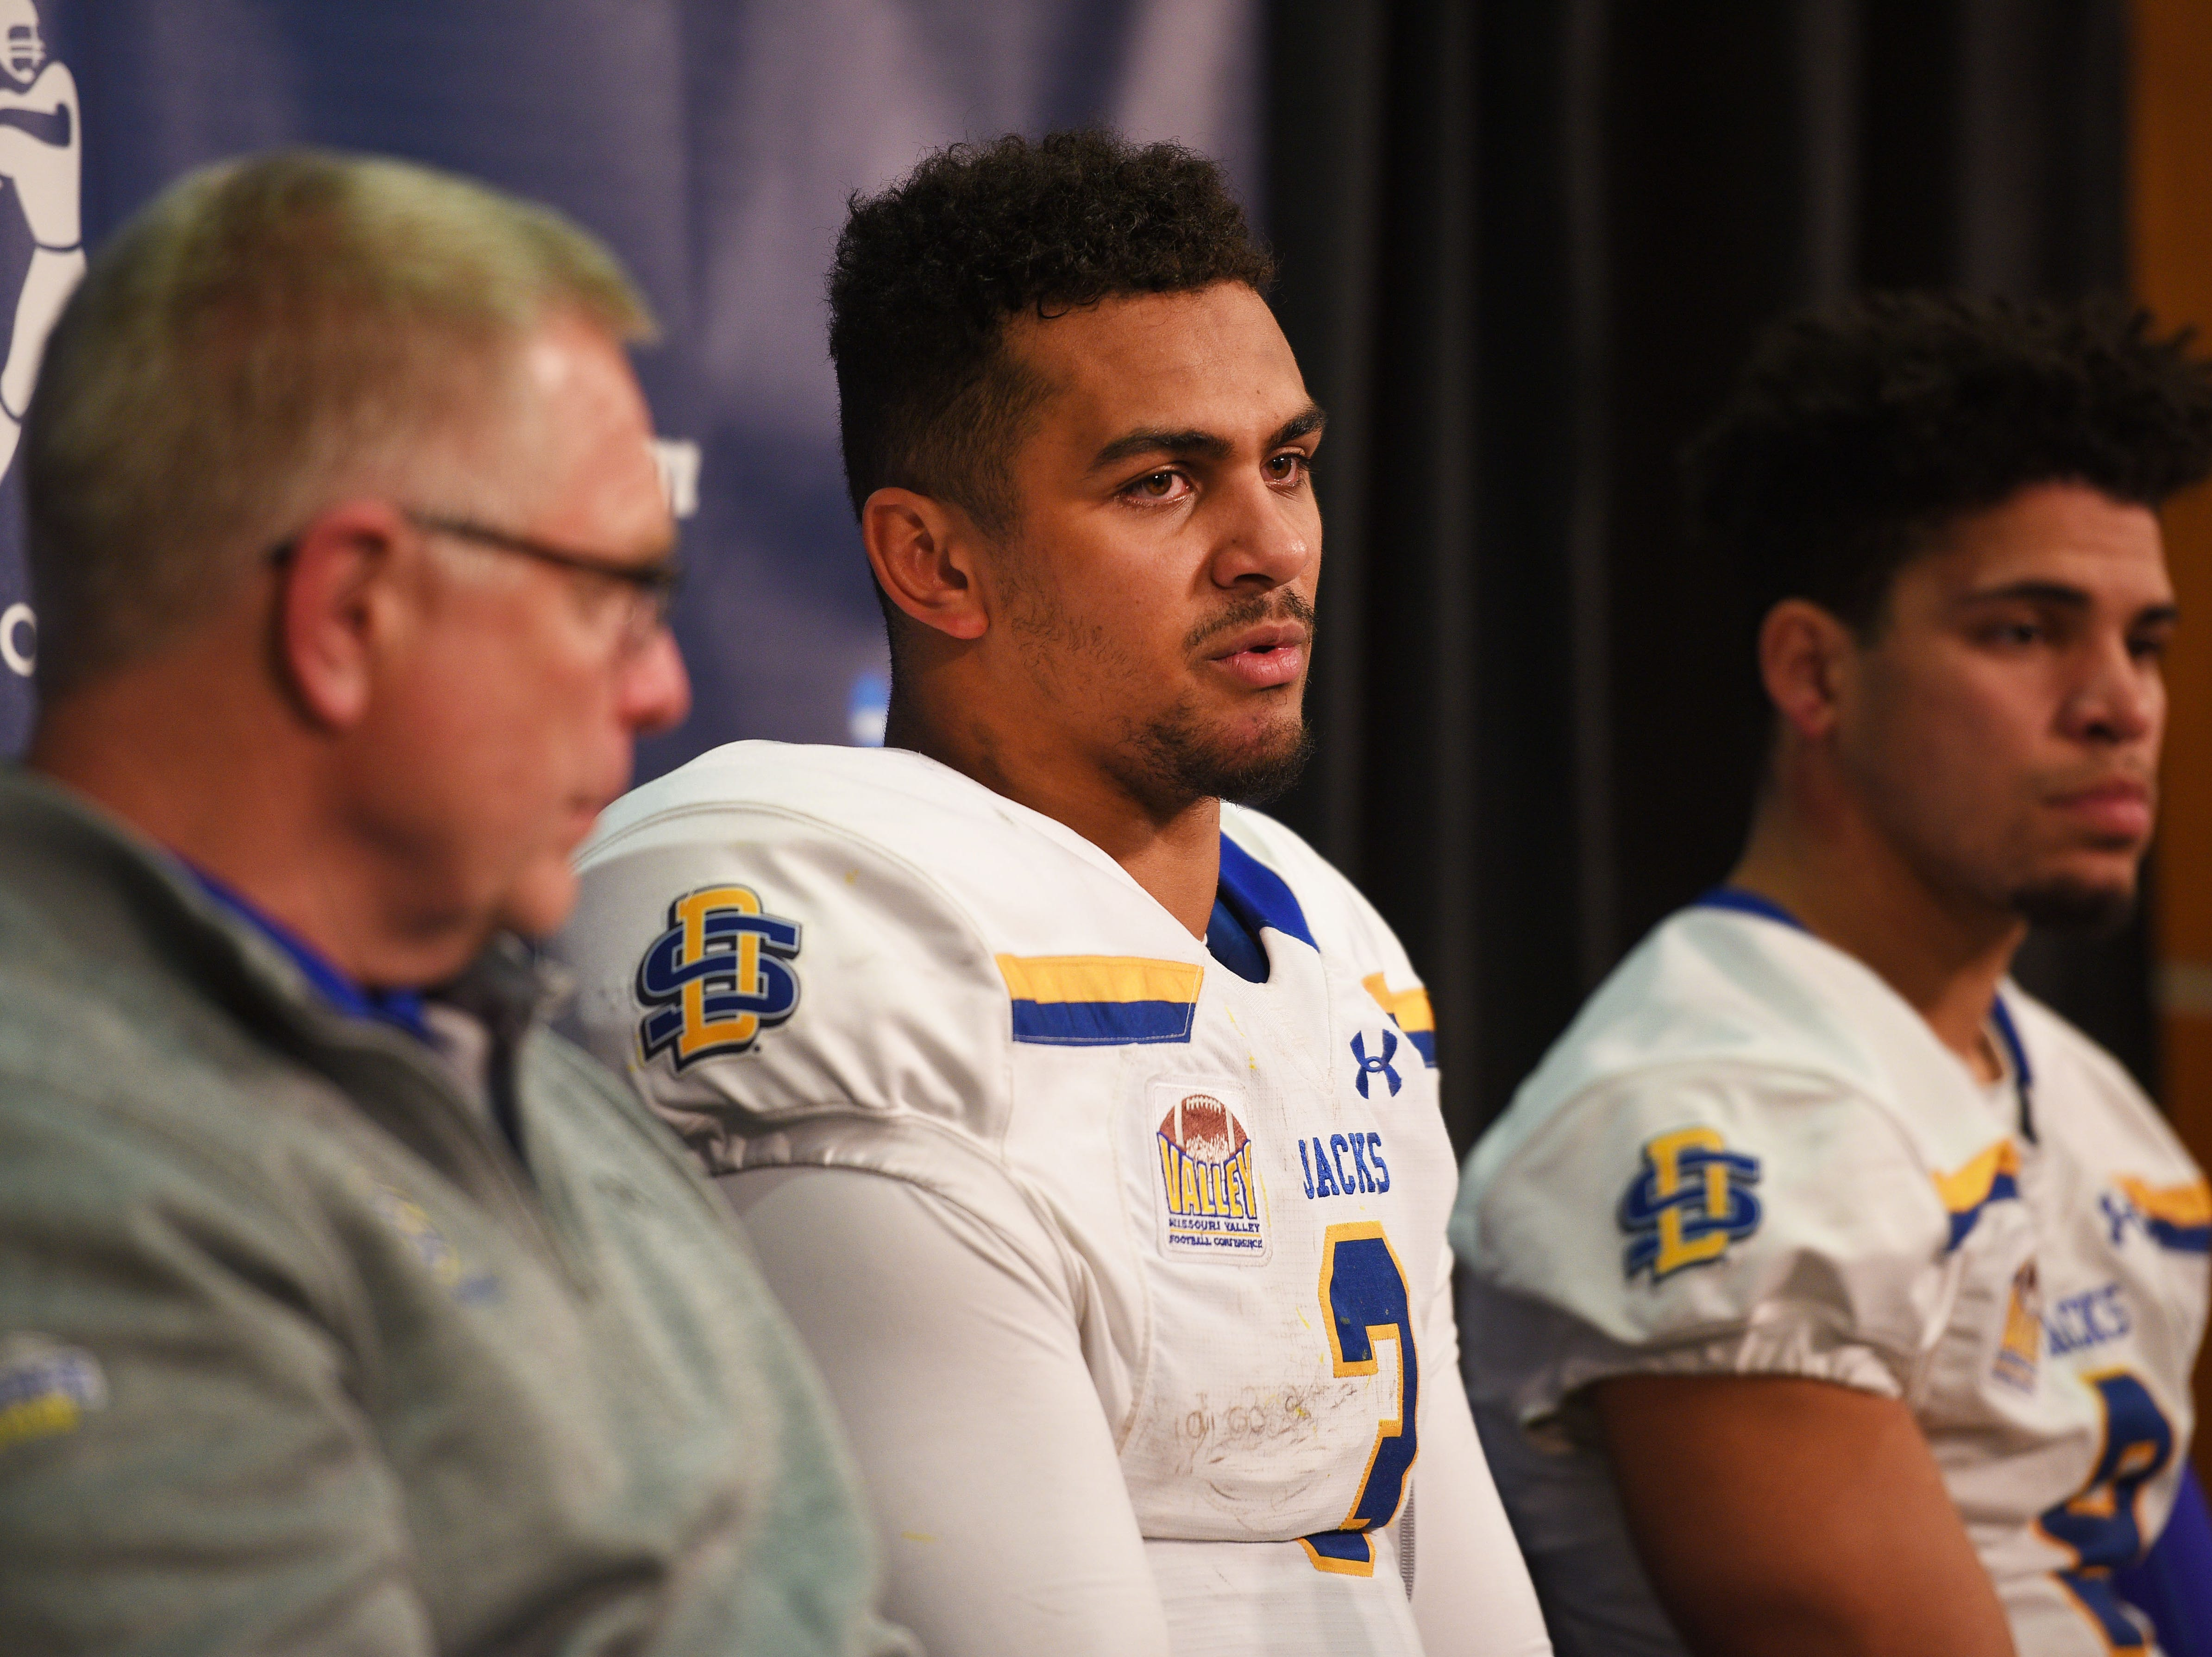 SDSU's head coach John Stiegelmeier, Taryn Christion and Jordan Brown talk in a press conference after their lose against NDSU at the Fargodome Friday, Dec. 14, in the FCS playoffs in Fargo.